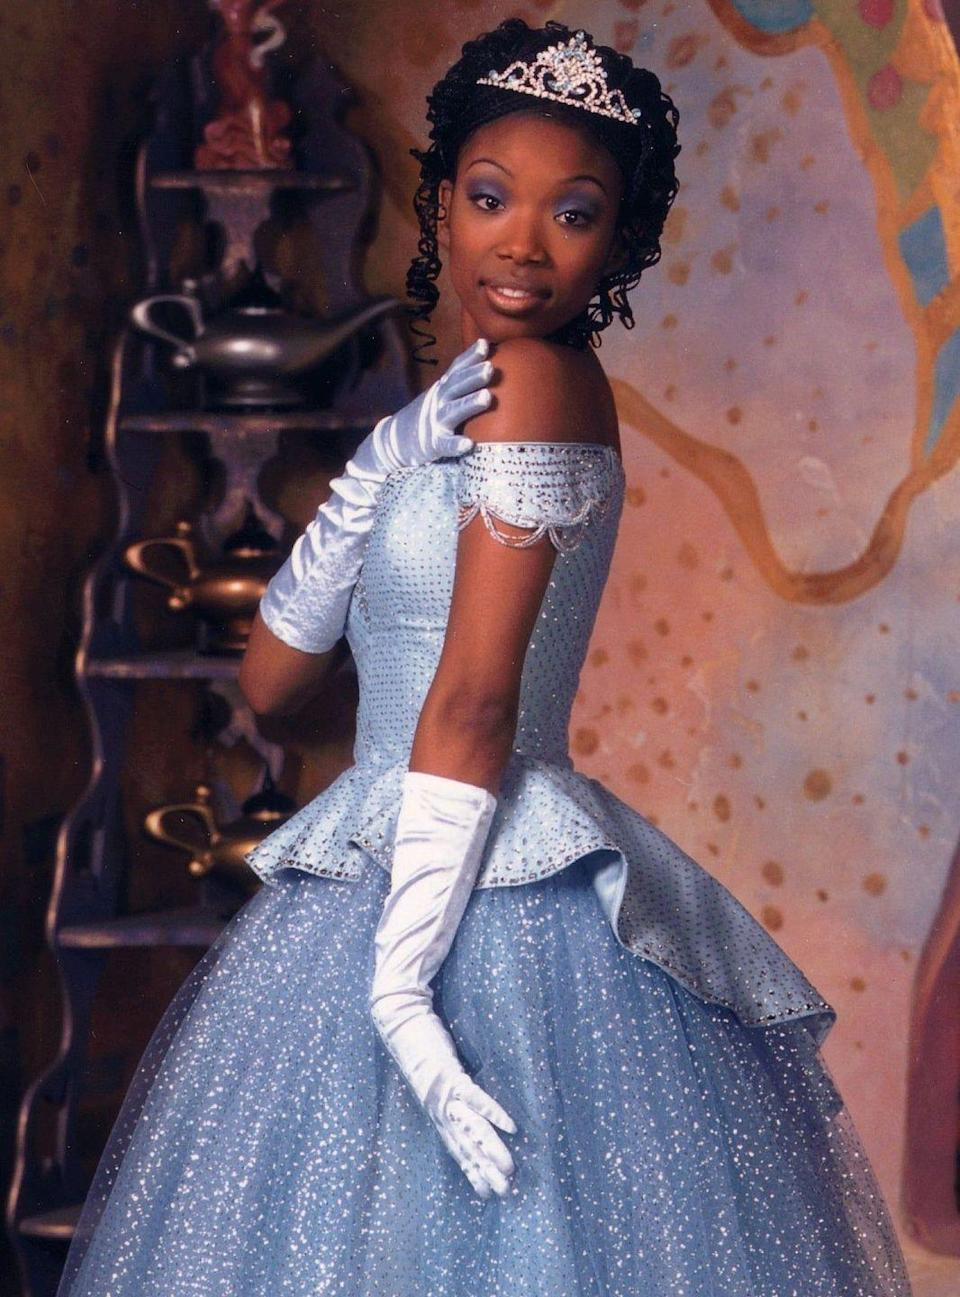 <p>Brandy proved to the world that Black girls everywhere deserve to be princesses when she starred in the 1997 remake of<em> Cinderella.</em> Starring alongside the iconic Whitney Houston, Brandy showed the world that braids and big lips are worthy of royalty. In this classic fairytale, we see a wide array of natural styles. Brandy is sporting box braids fashioned in an updo while her fairy godmother (Whitney Houston) is wearing her curls out, and we can't forget the one and only Whoopie Goldberg who is nothing but royalty playing the queen in her dreadlocks.</p>